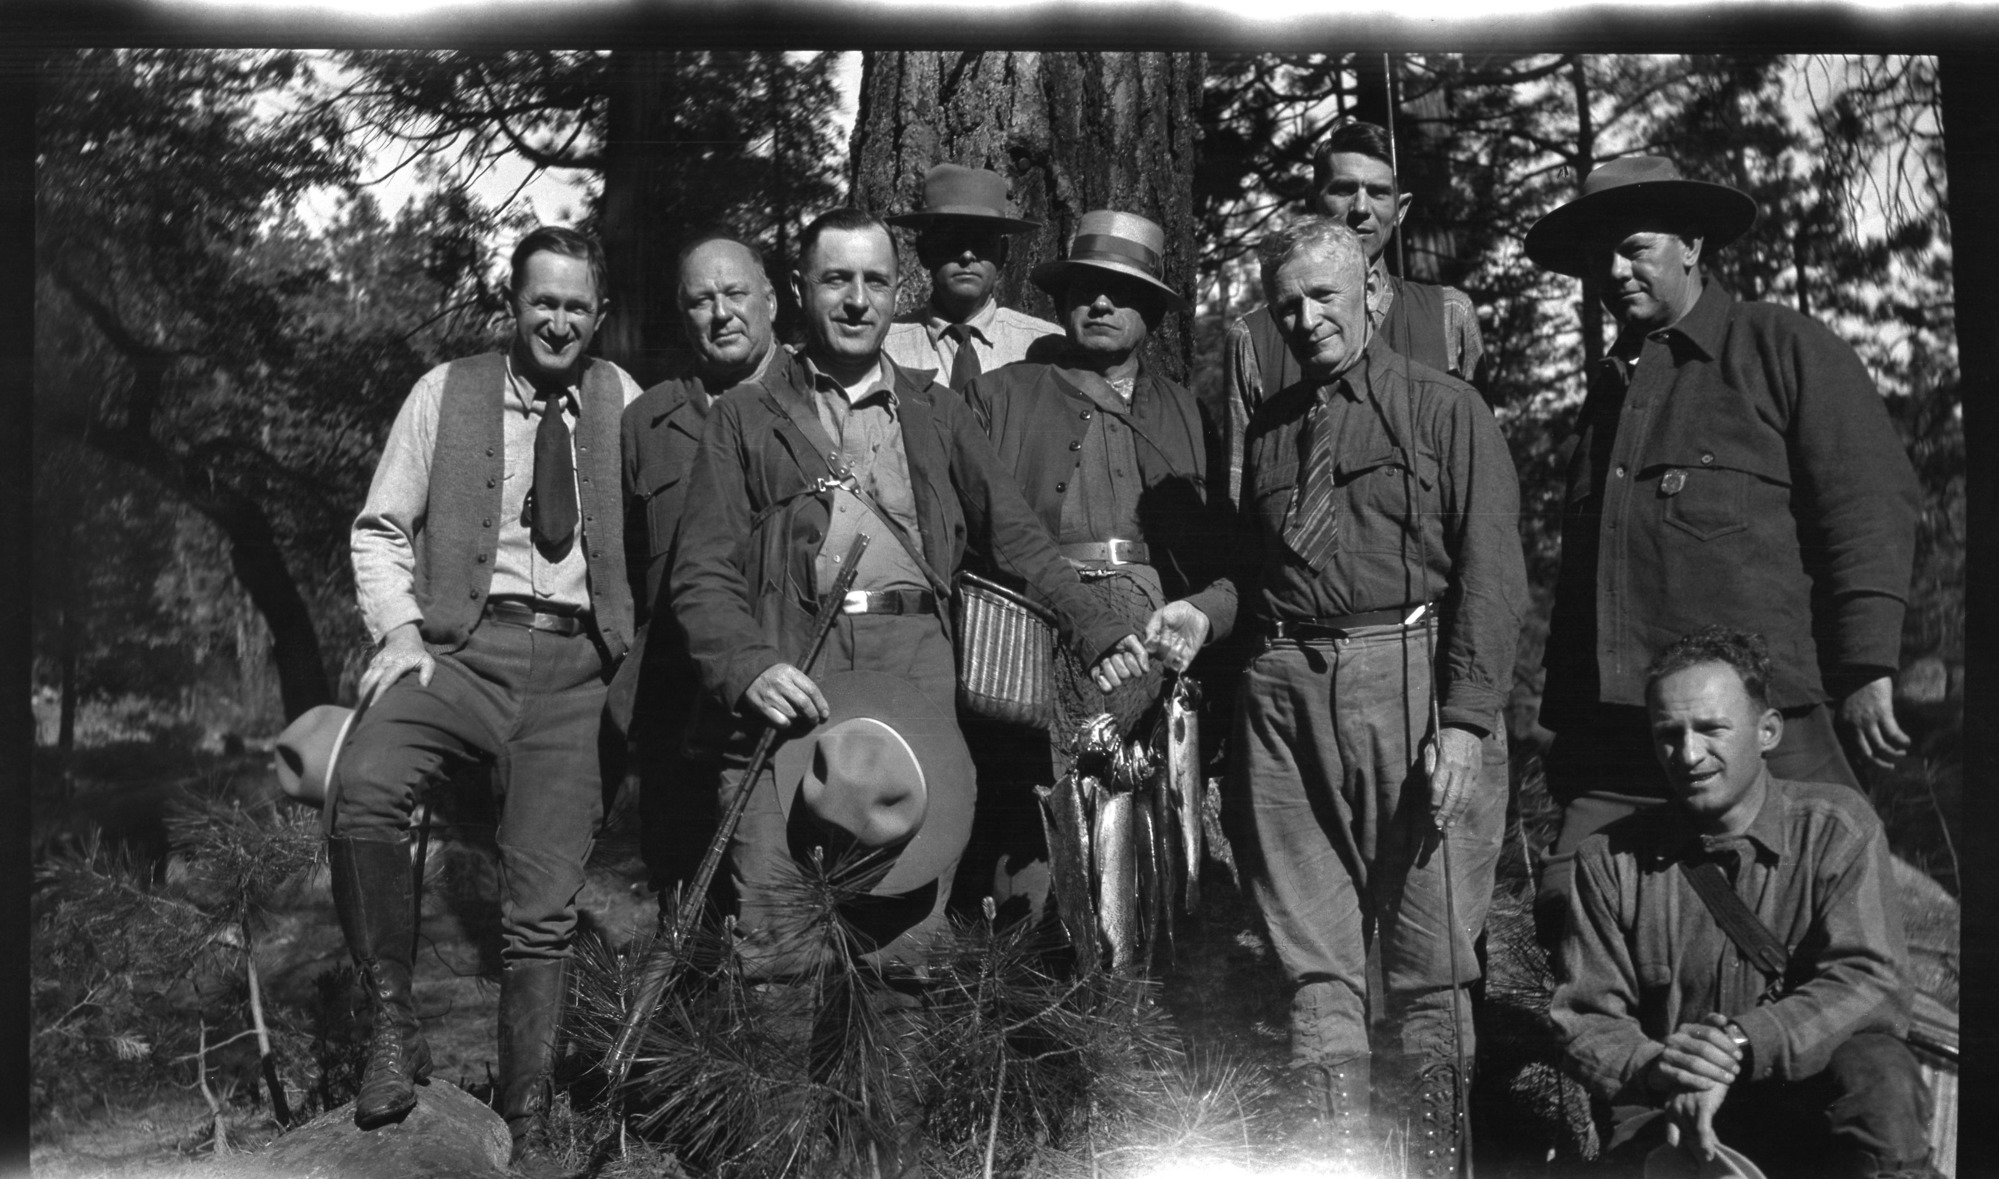 Horace Albright on left and Gov. C.C. Young in center without hat. Don Tresidder behind Young and Forest Townsley on right (standing).  Copy Neg: Mike Floyd, 9/91